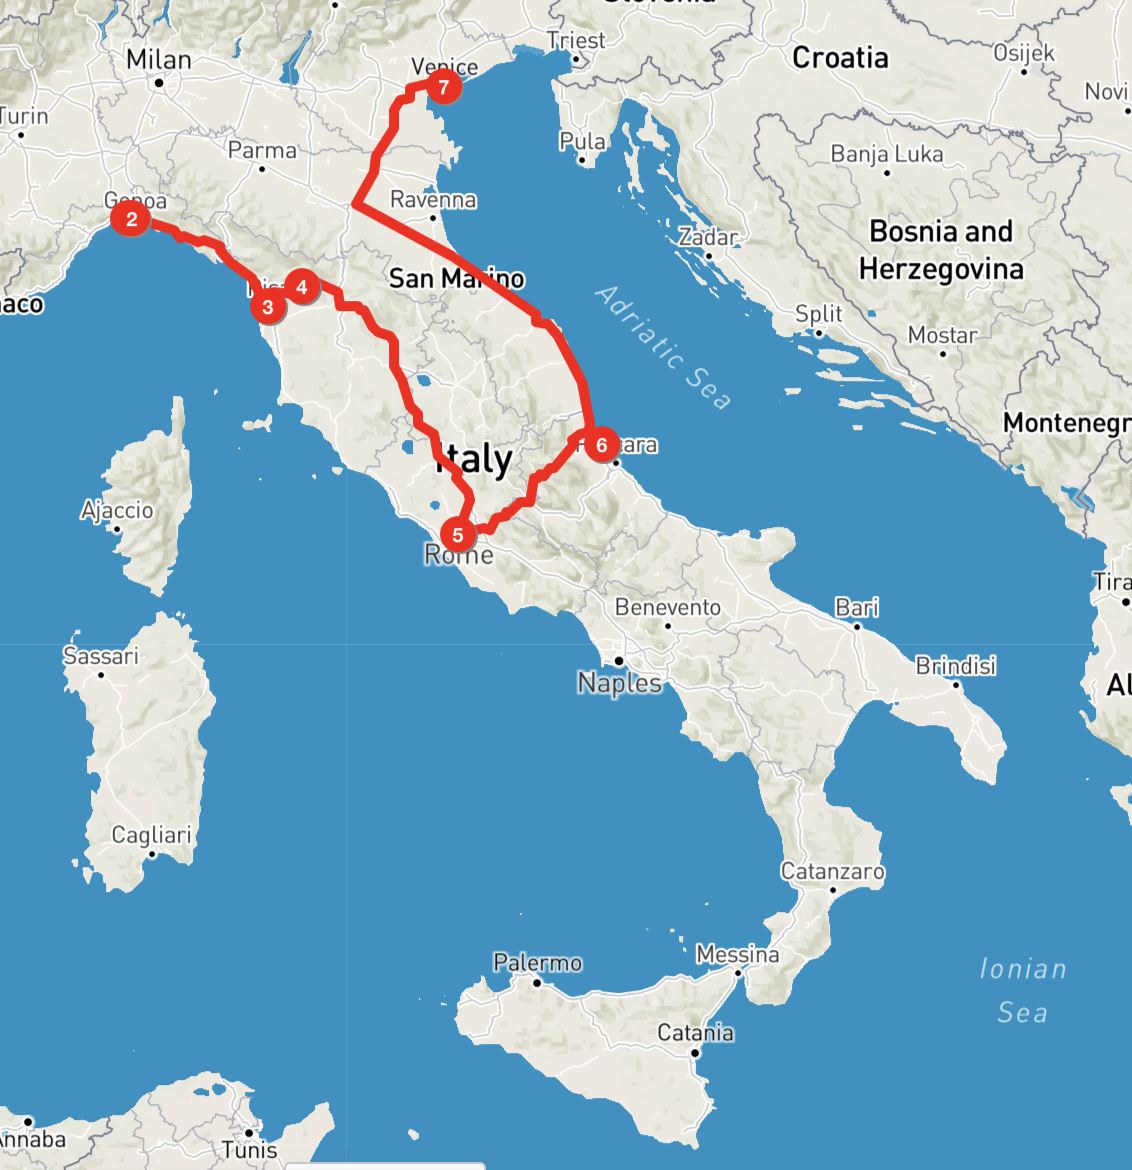 Brief Map of the Italian tour